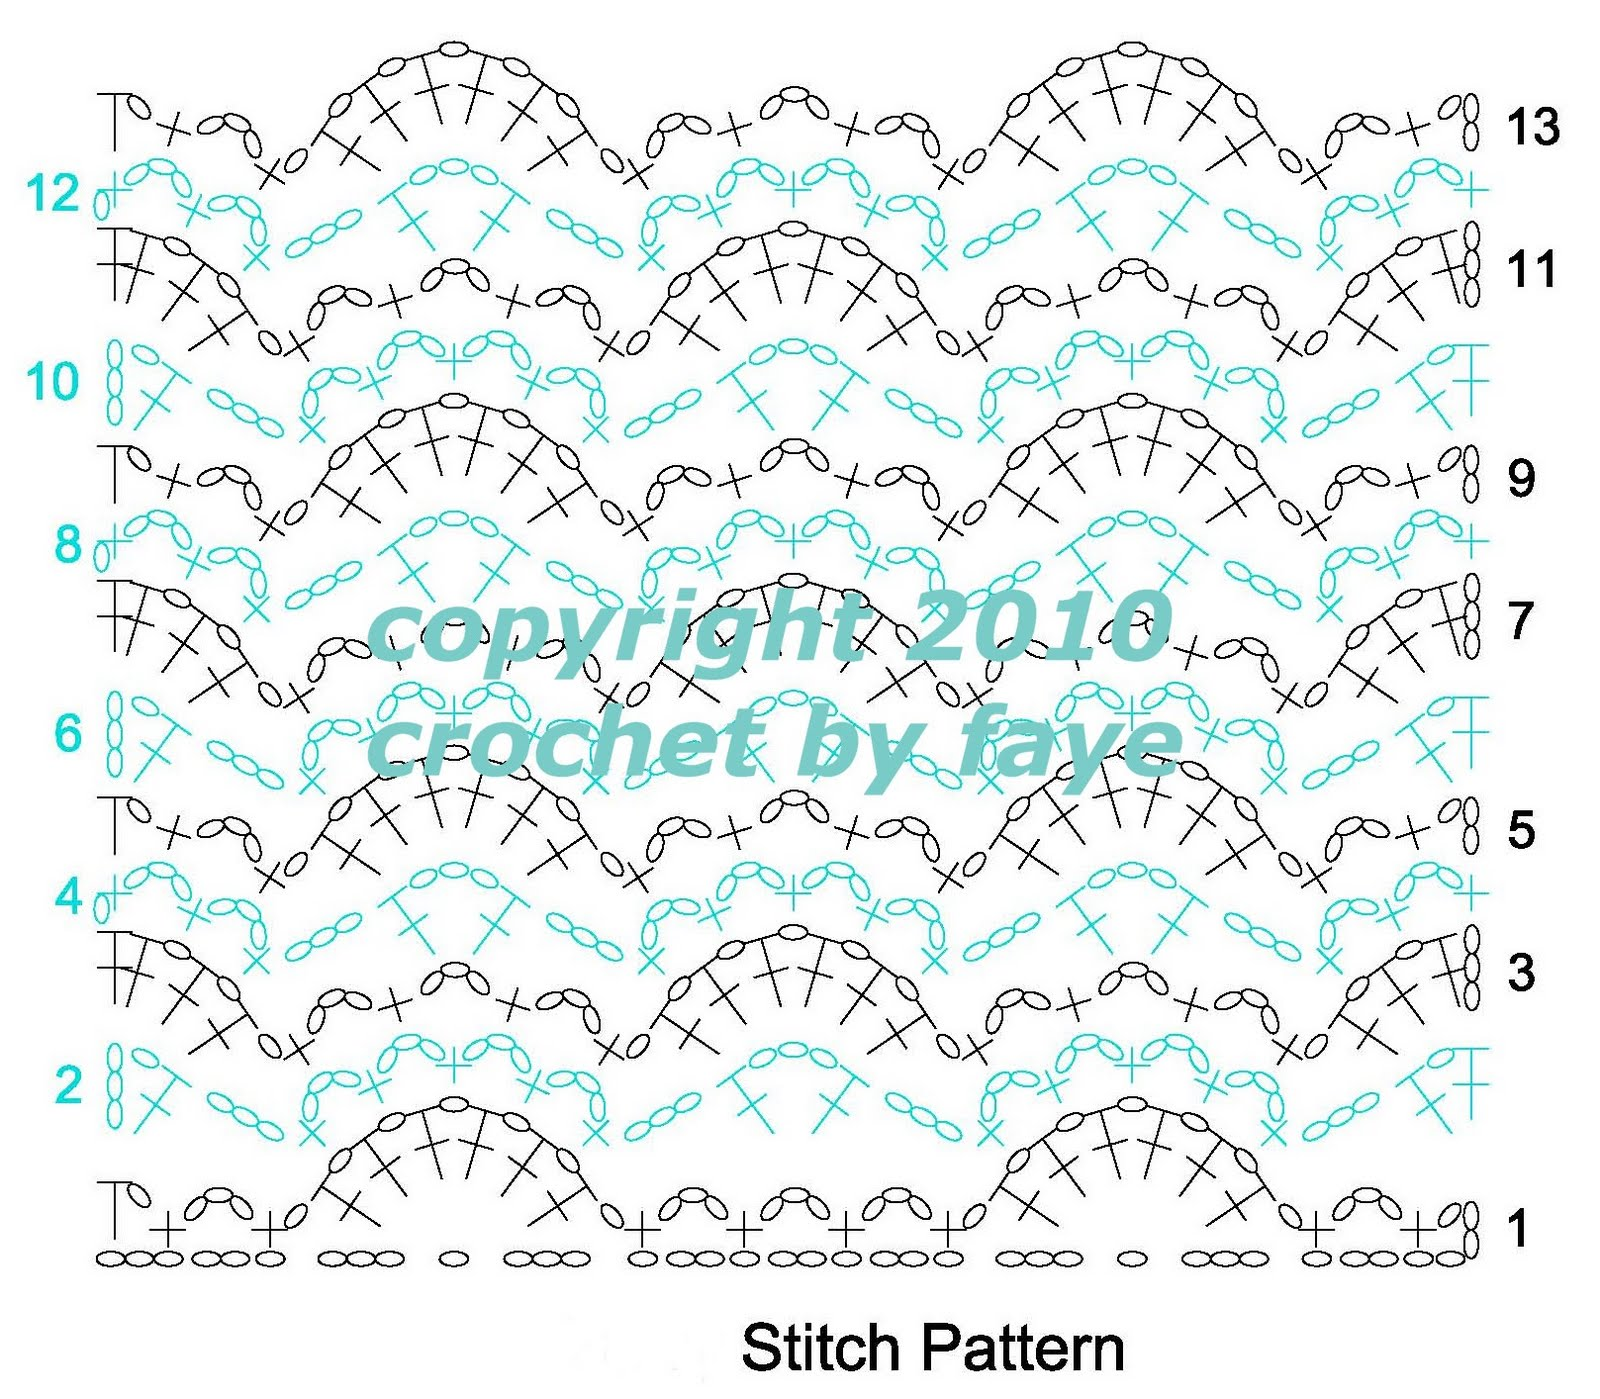 Crochet Stitches Designs : Crochet Patterns Stitches - Catalog of Patterns